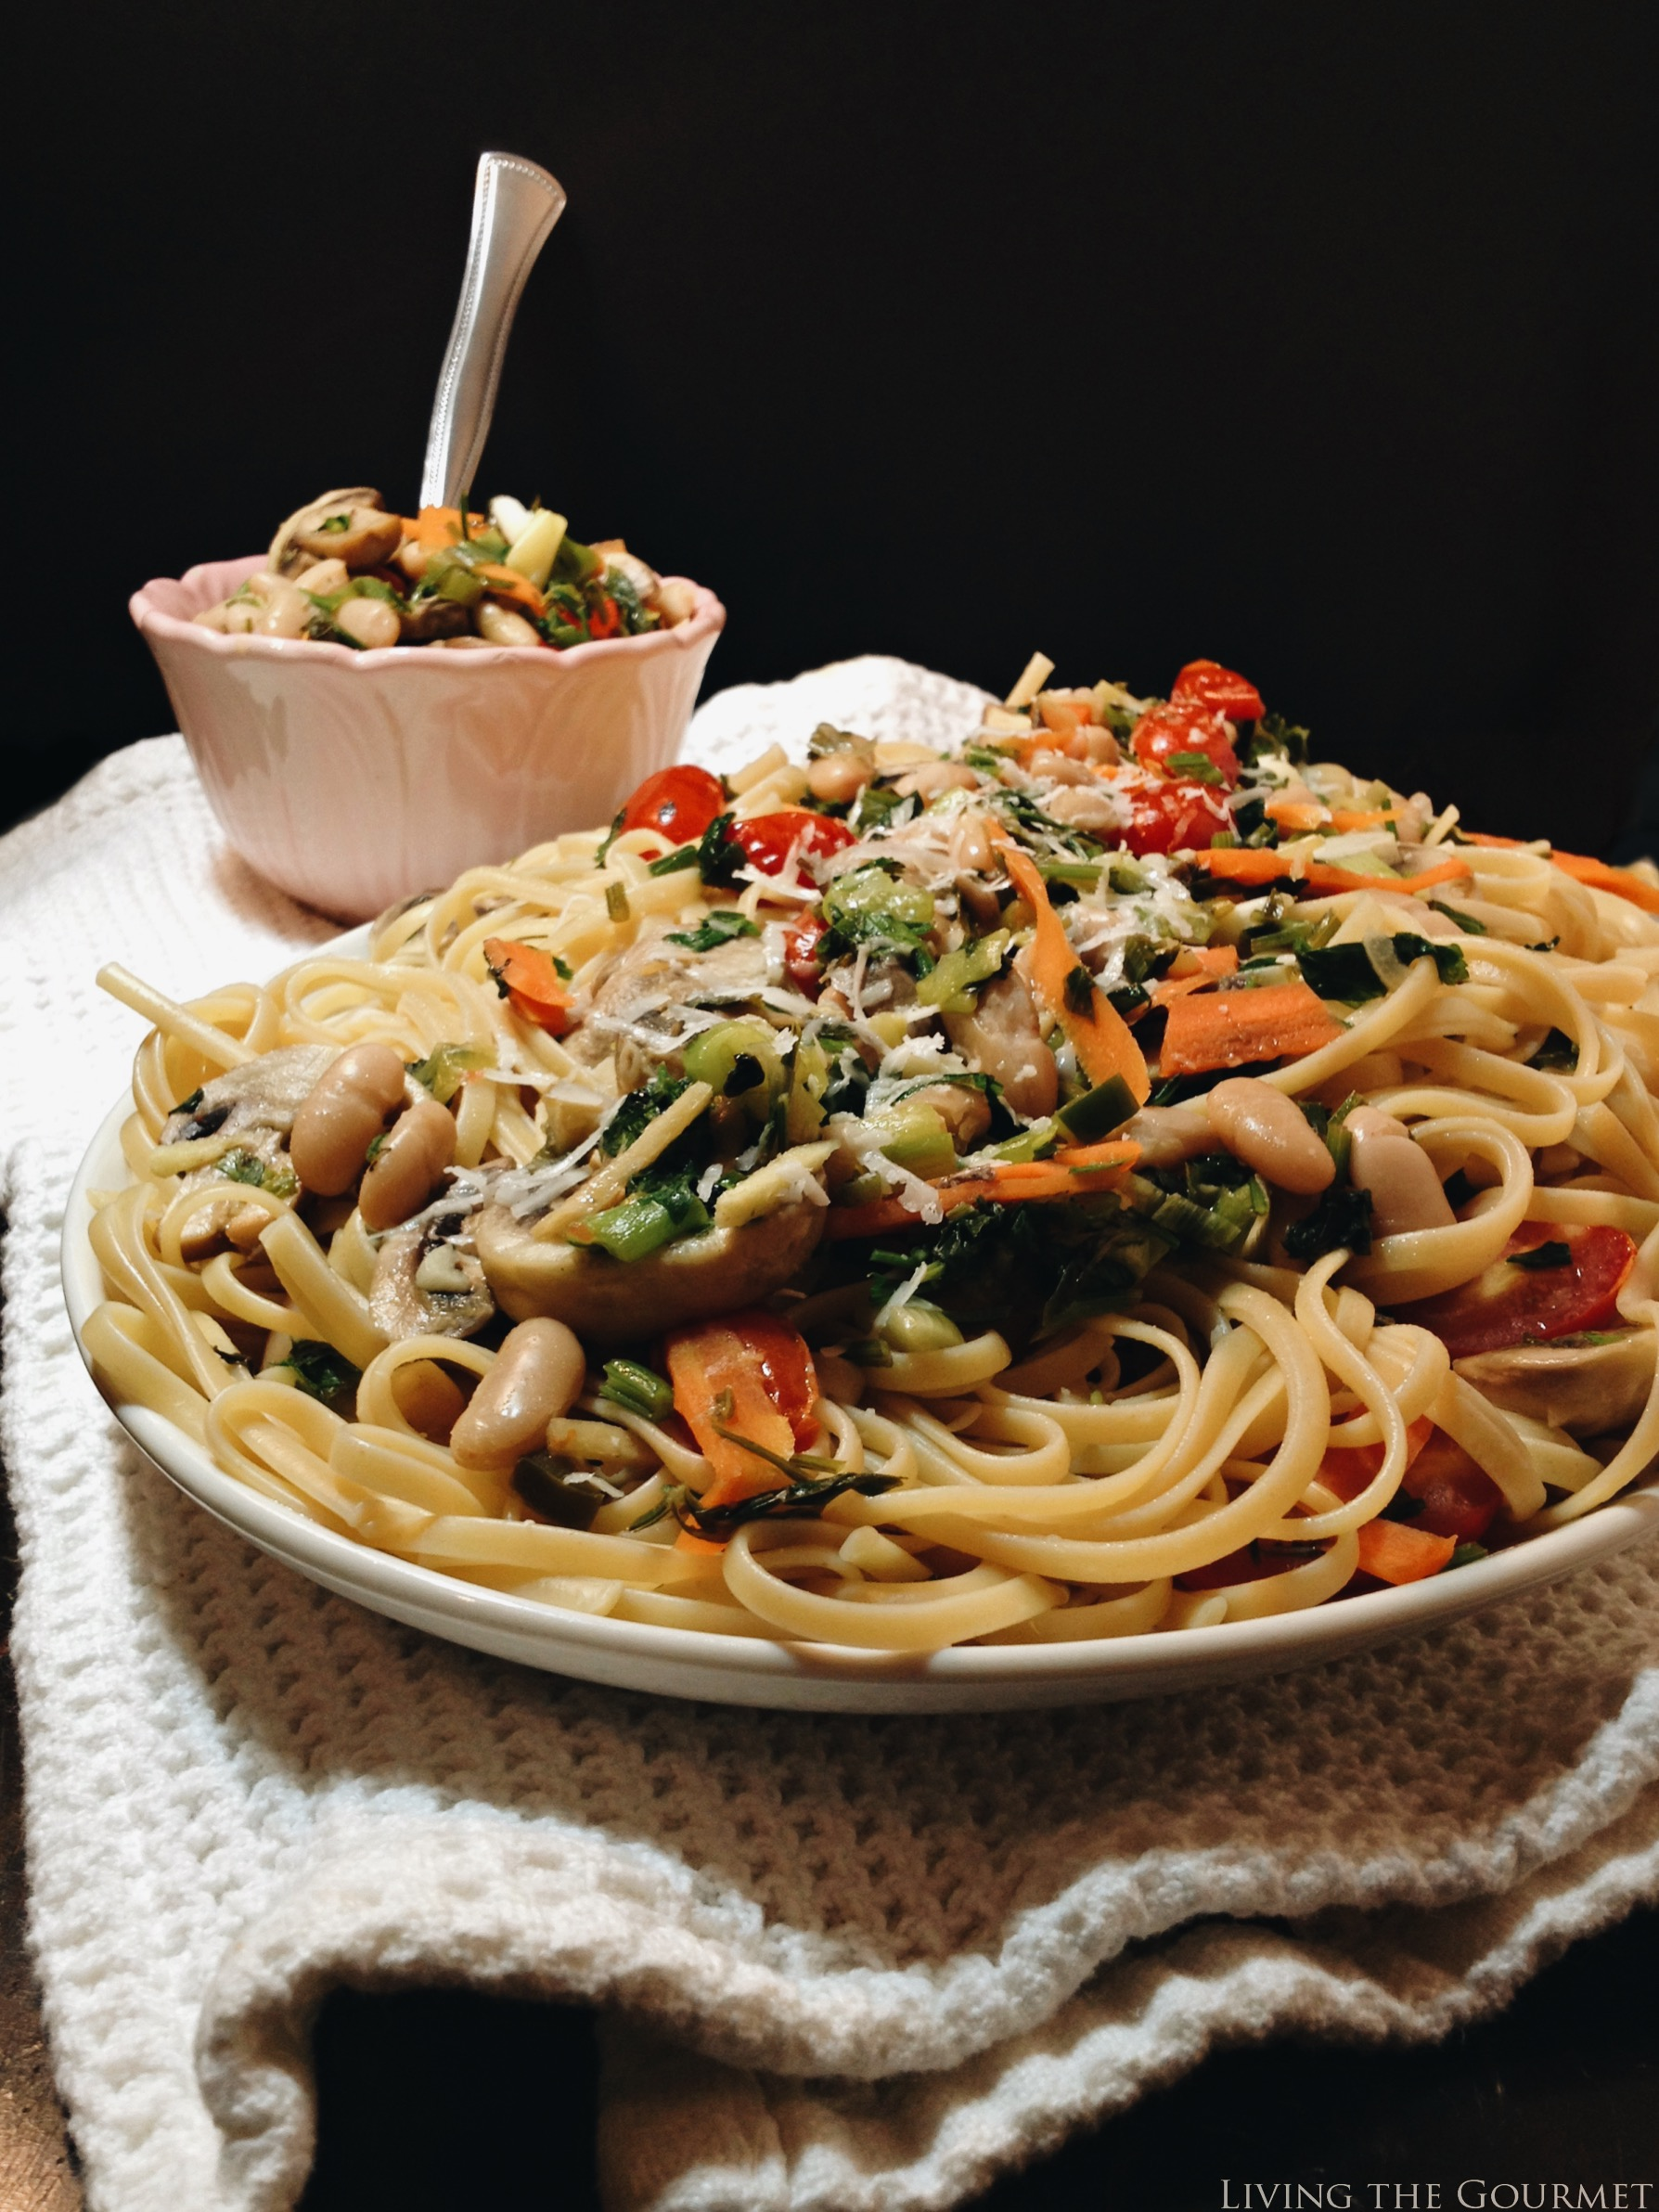 Living the Gourmet: Sautéed Veggies with Linguine